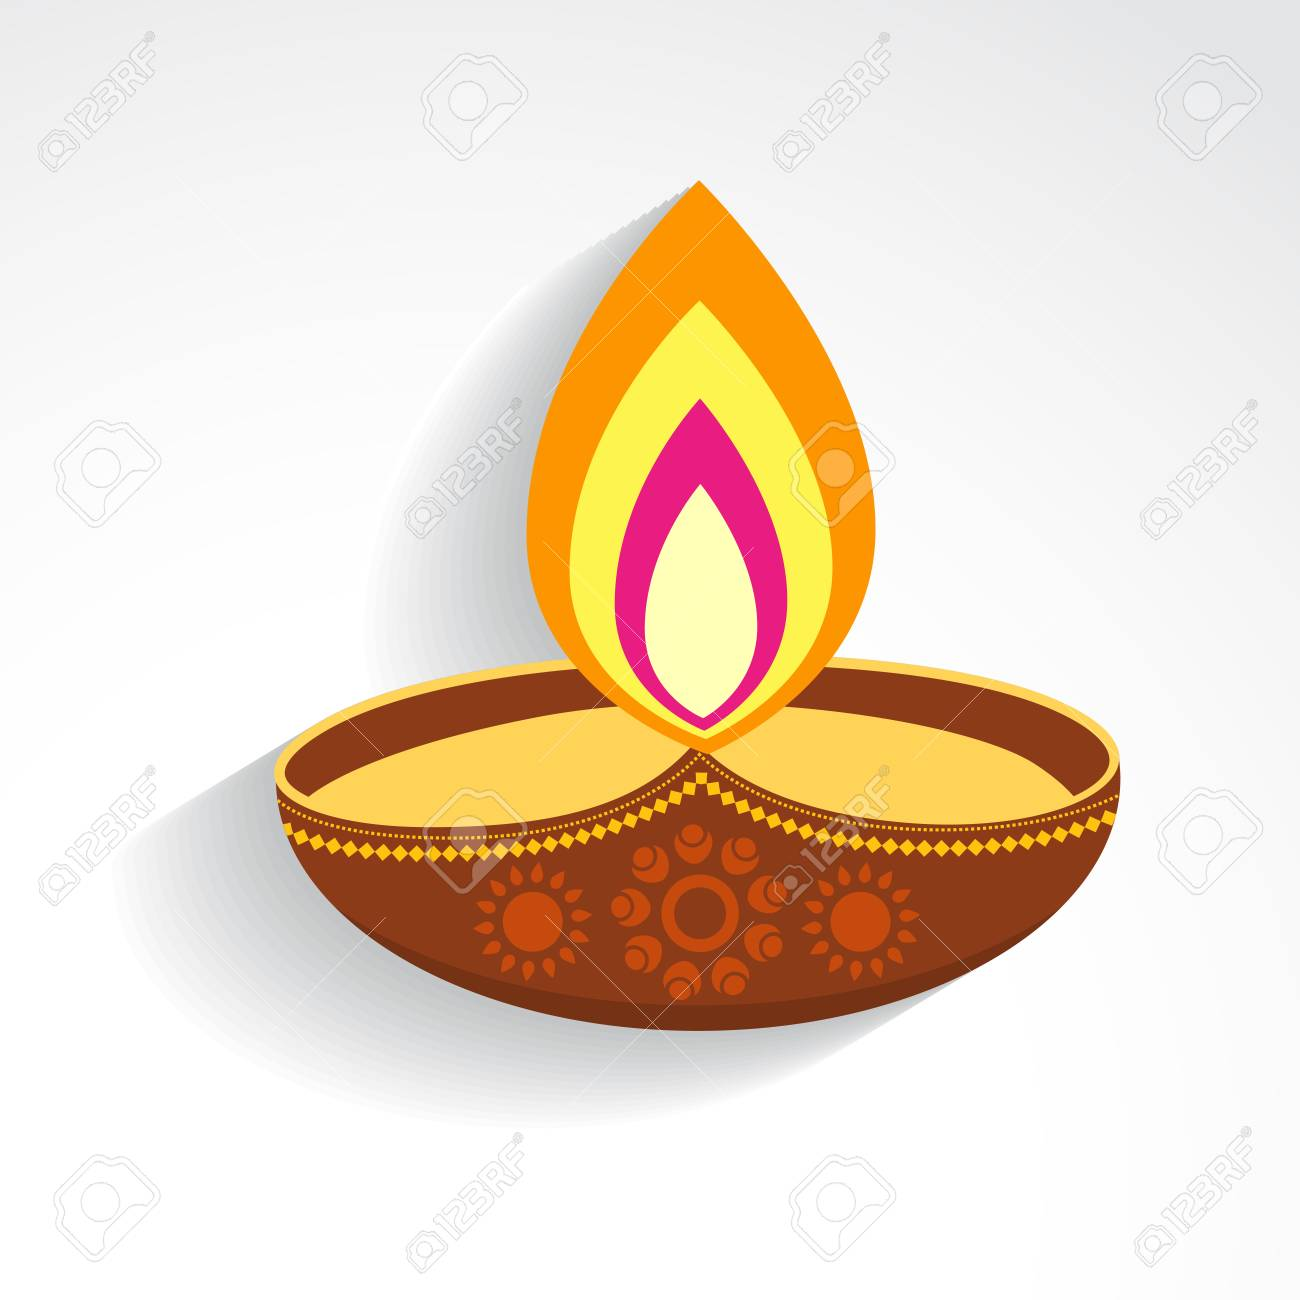 Creative Colorful Vector Diwali Festival Diya Design Royalty Free ... for Diwali Lamp Designs  575cpg